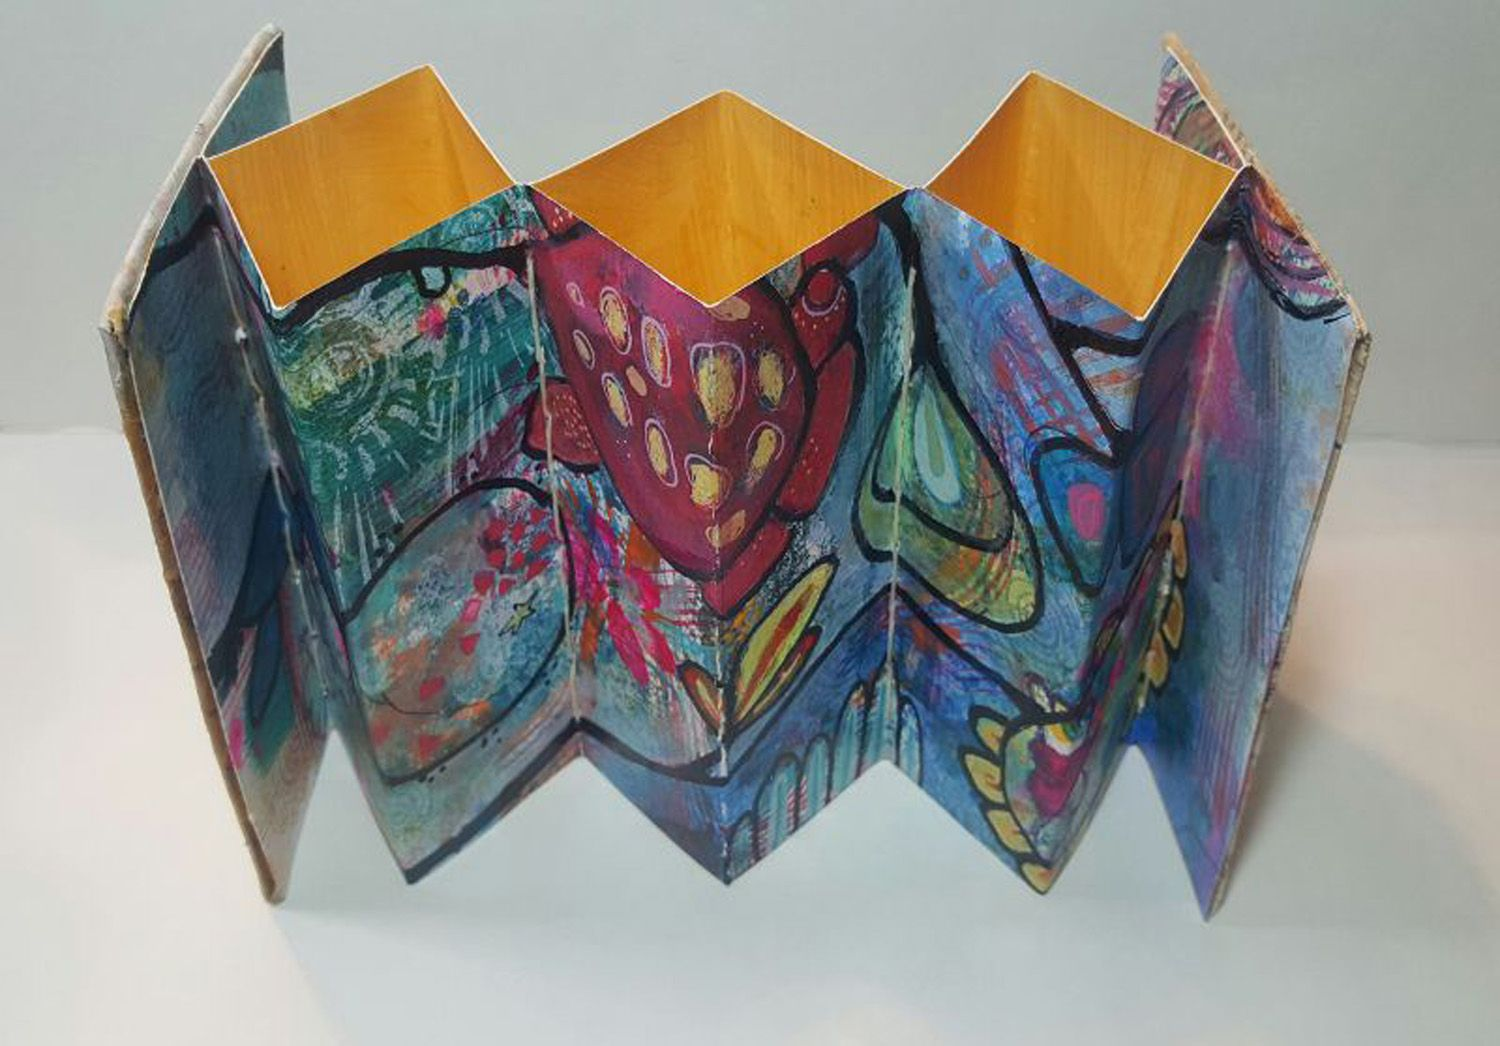 Back To Back Accordion Book Book Art Accordion Book Elements Of Art